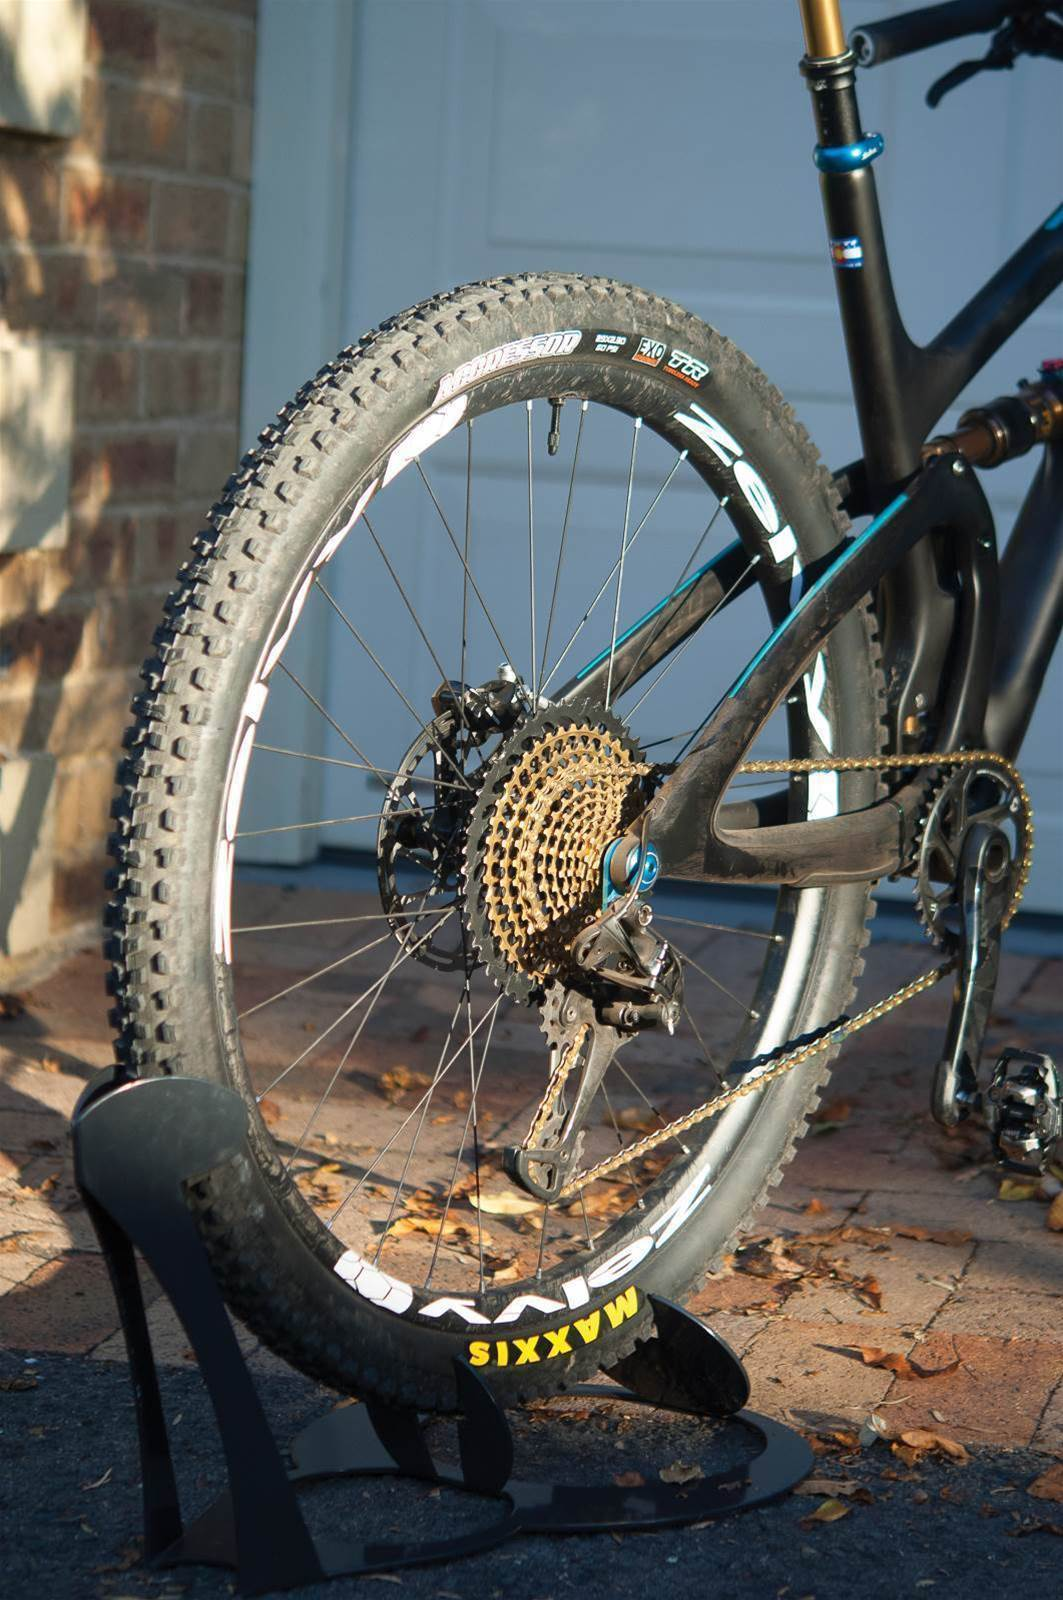 TESTED: Zelvy I9 Carbon 29 PDL Wheel Set